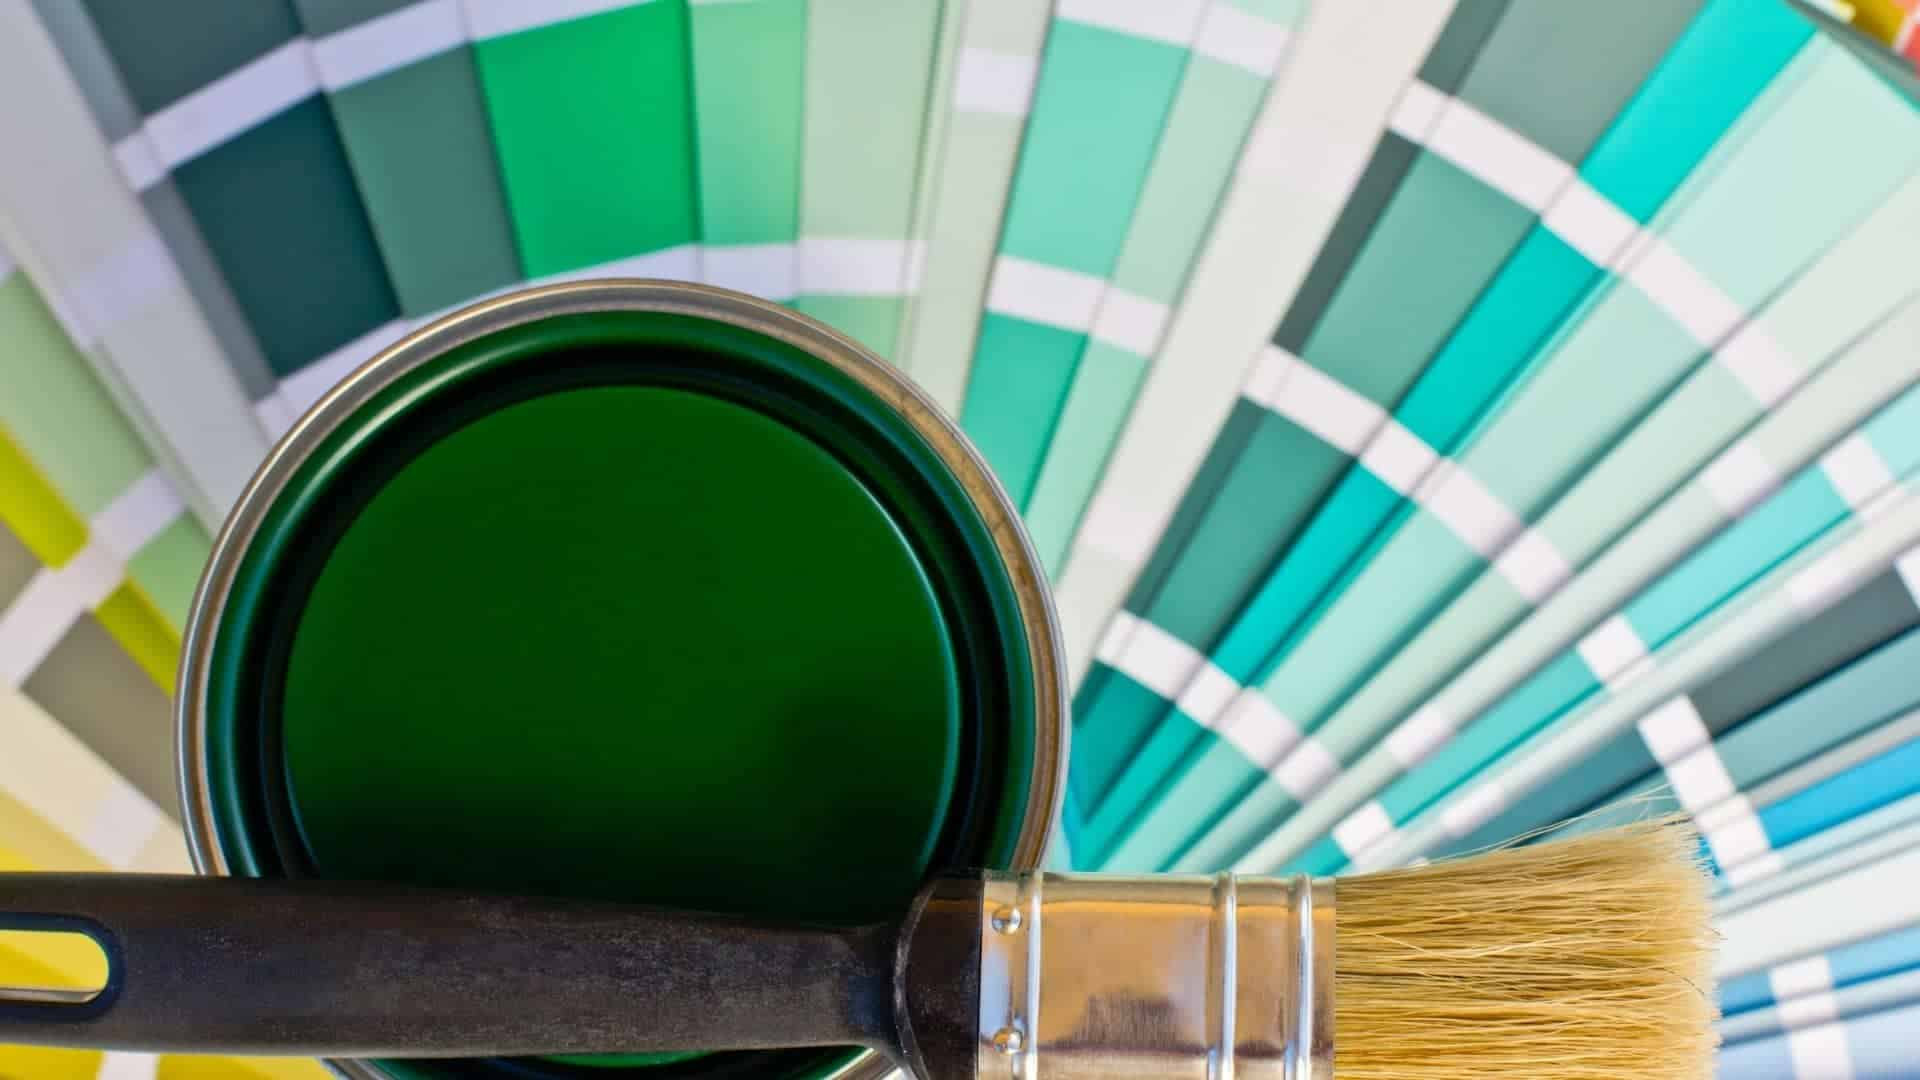 How To Make Green Paint